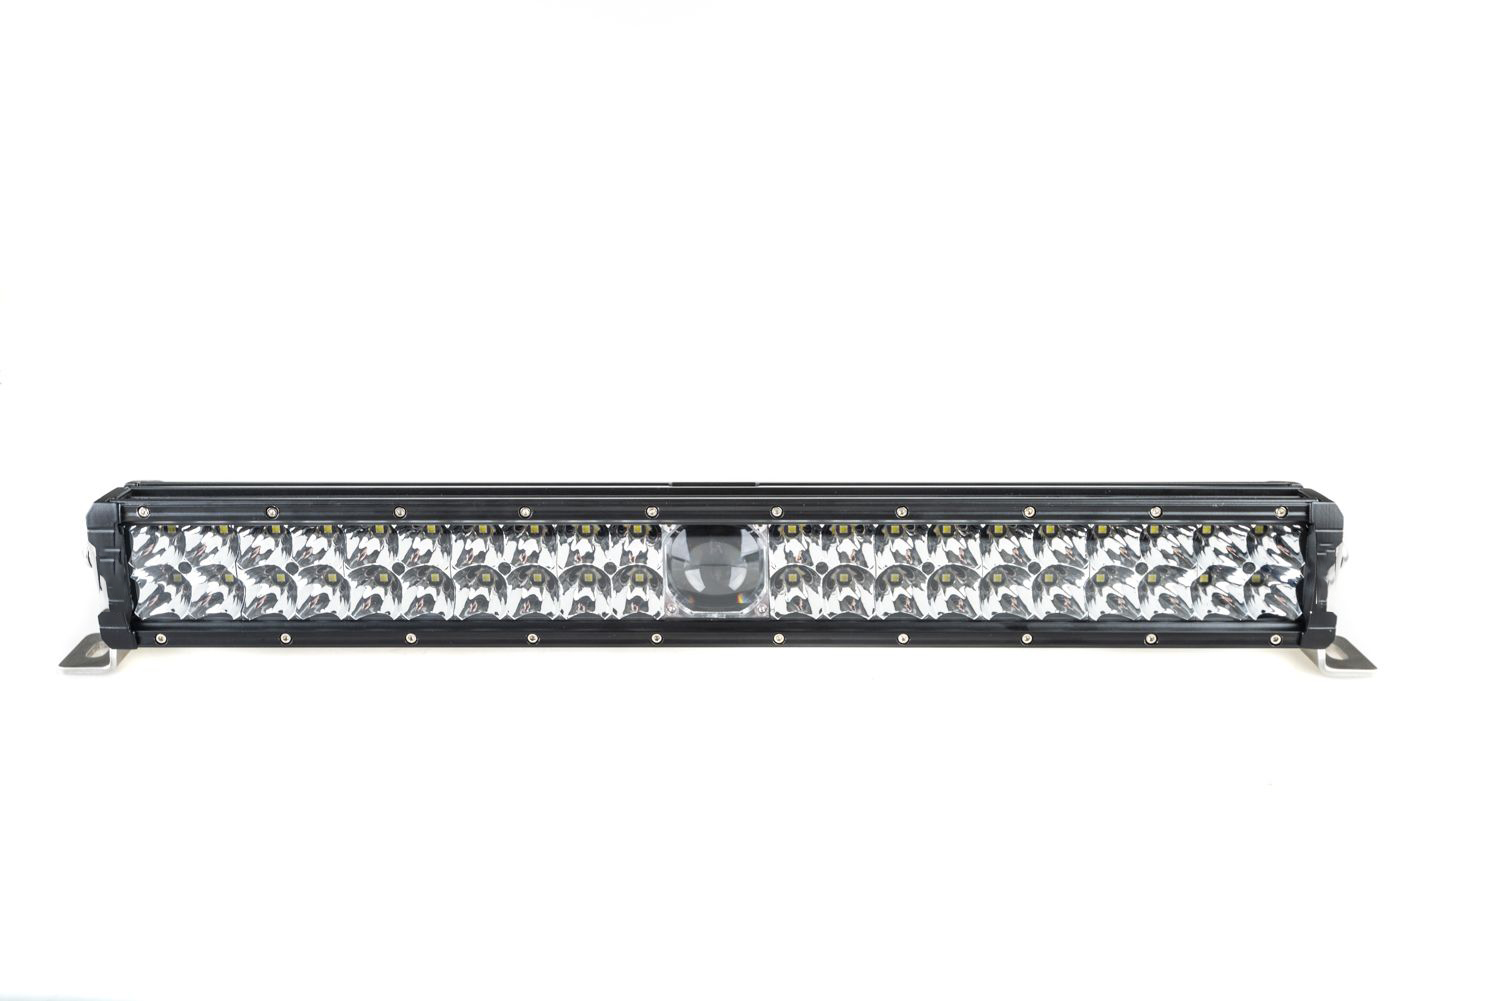 """Laser TBS -19041-O 22"""" Laser Light Bar follows in the footsteps of the legendary Toby's Laser Driving Lights"""